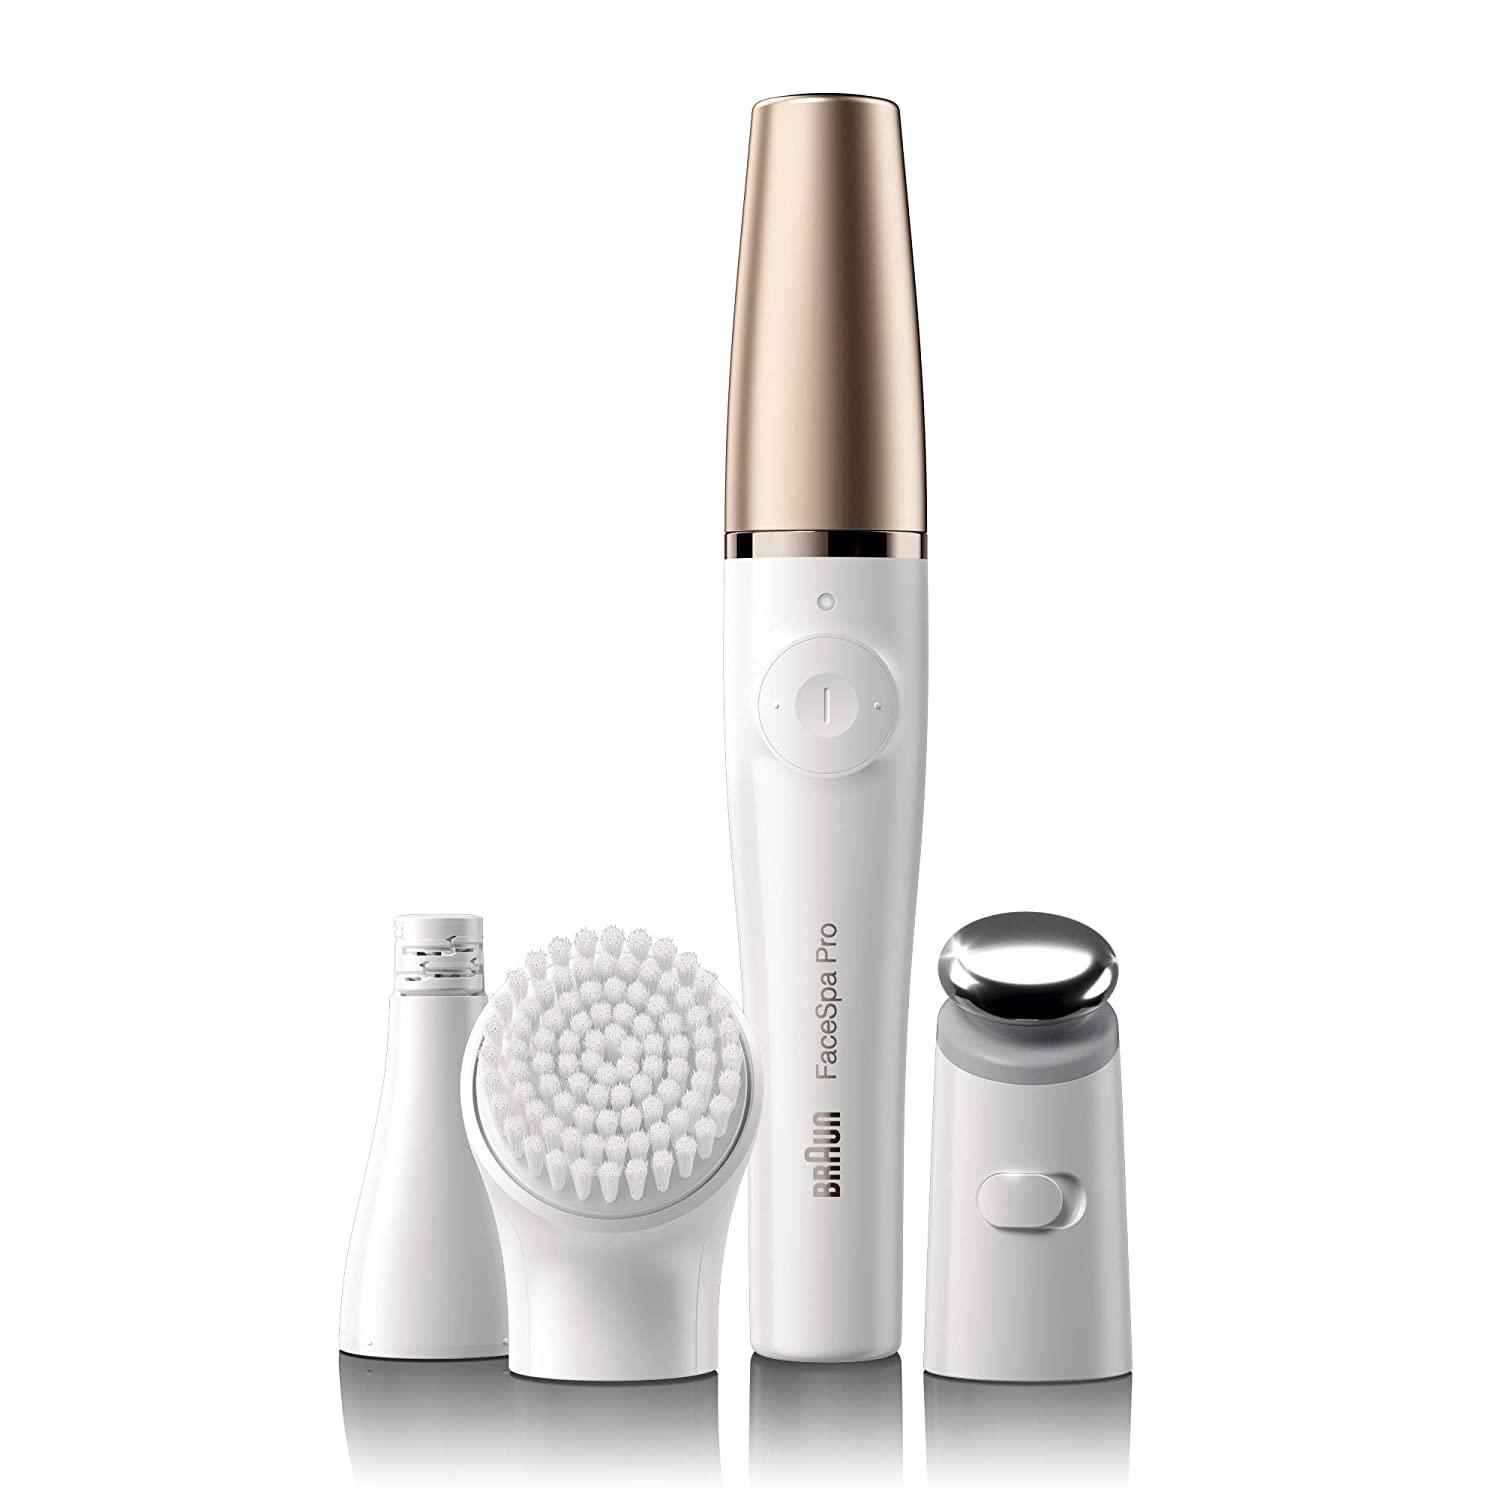 Braun Facial Hair Removal for Women, Facespa Pro 911 Facial Epilator for Women, White Bronze 3-in-1 Facial Epilating, Cleansing Skin Toning System for Salon Beauty At Home With 3 extras